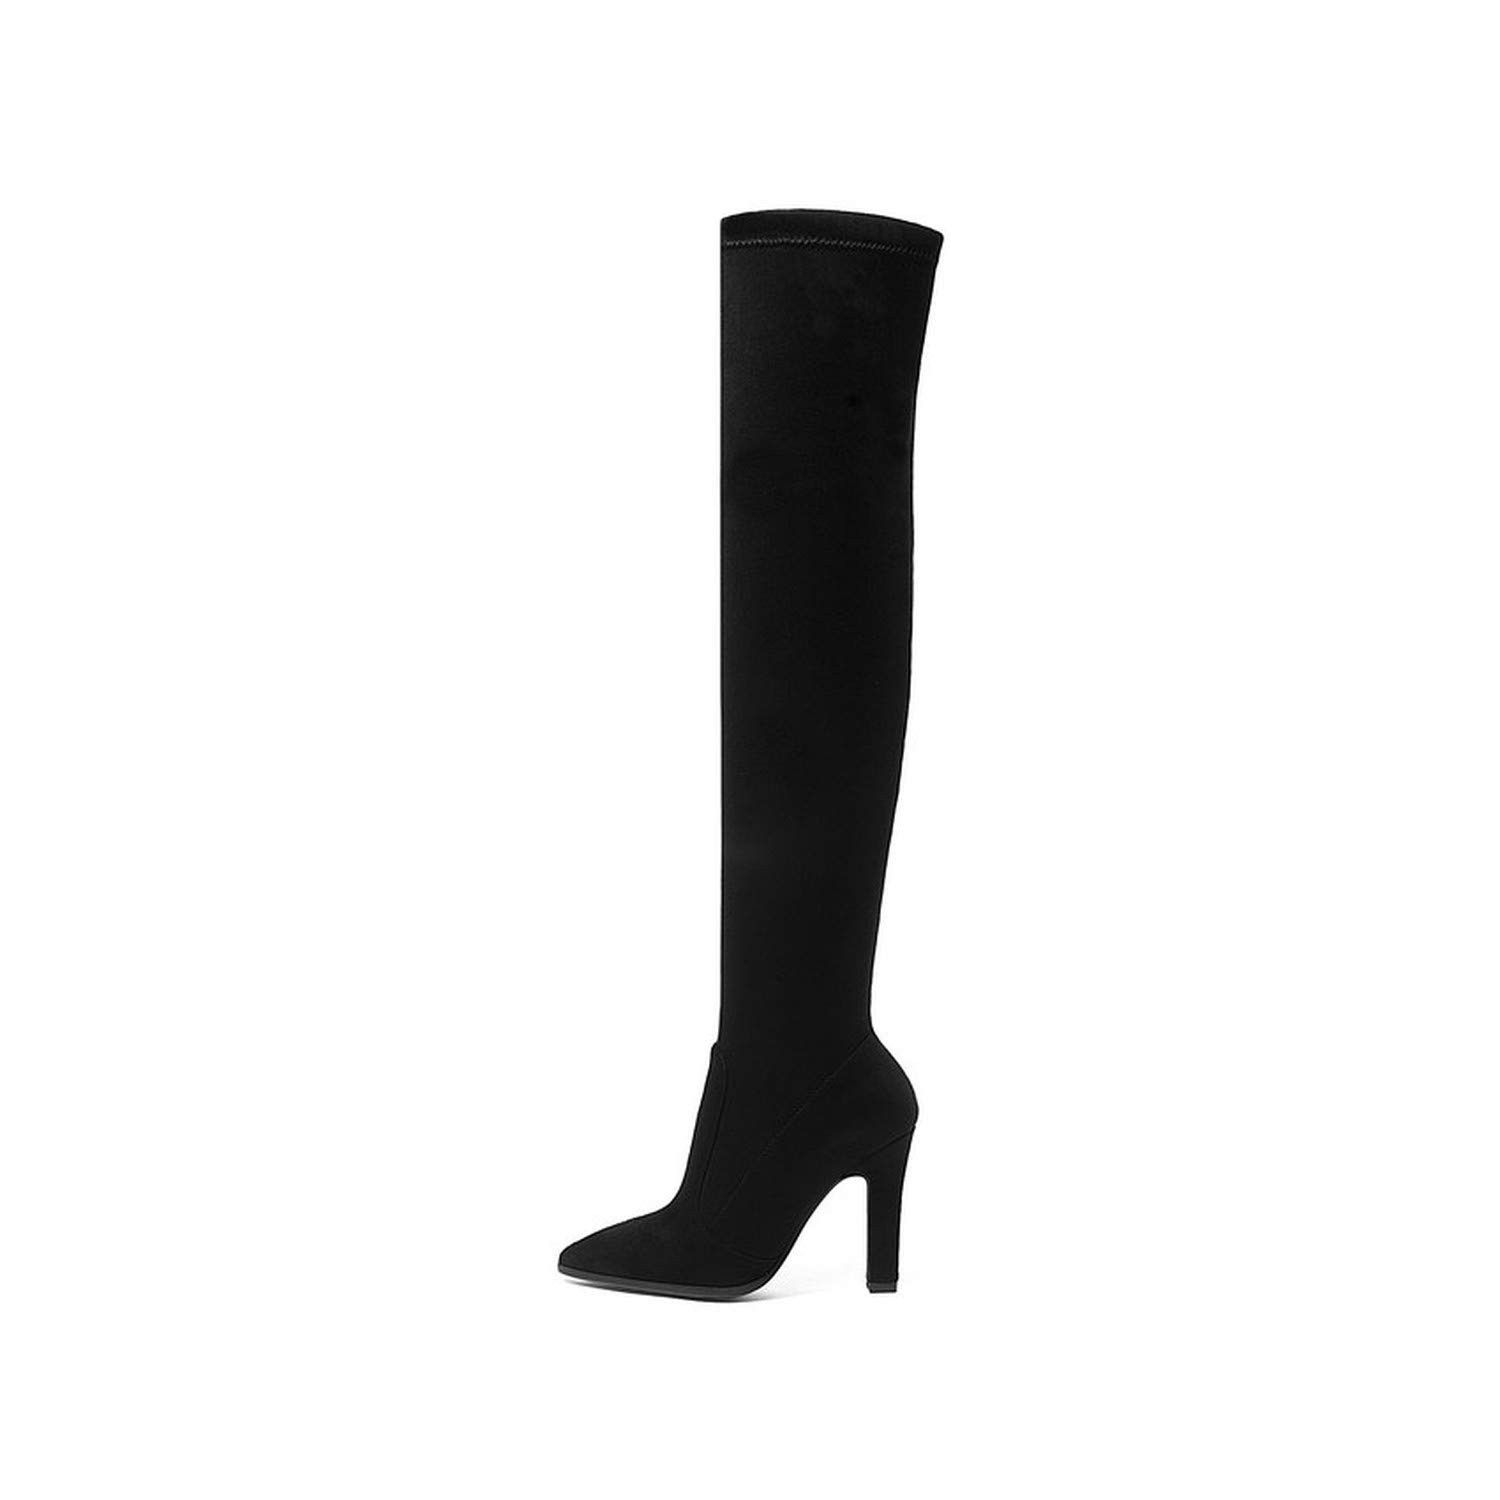 2019 Women Over The Knee High Boots Slip on Winter Shoes Thin High Heel Pointed Toe Women Boots